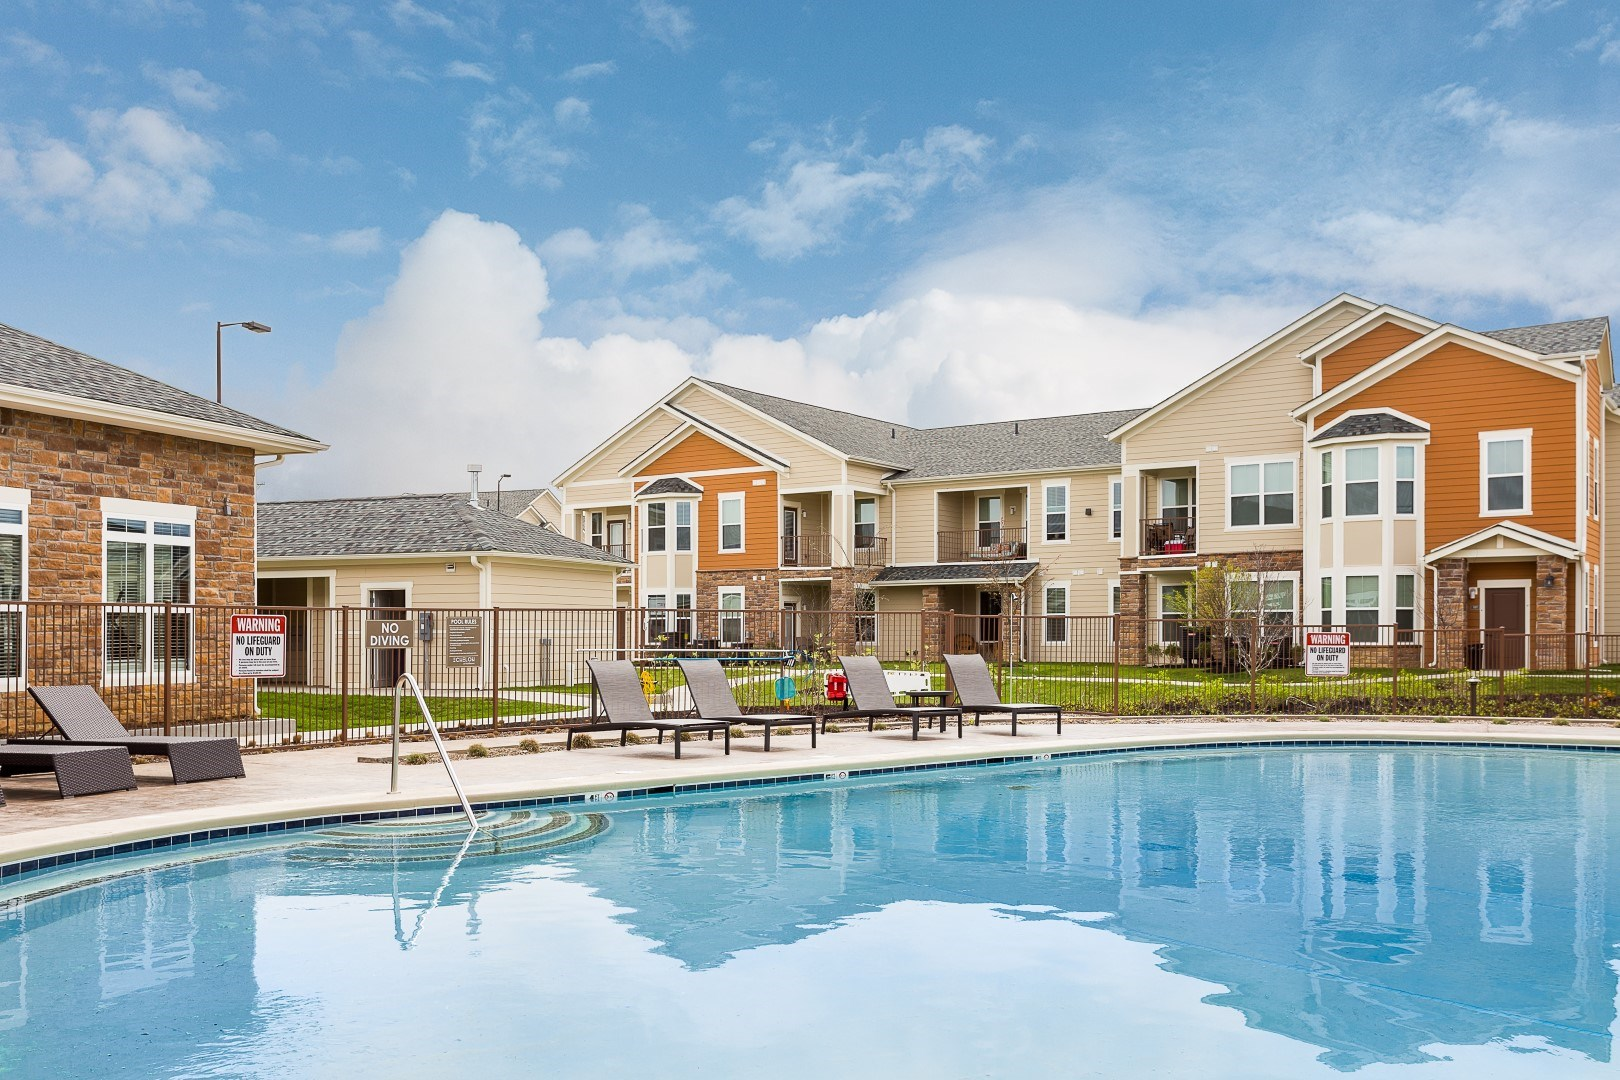 pool apartments in louisville